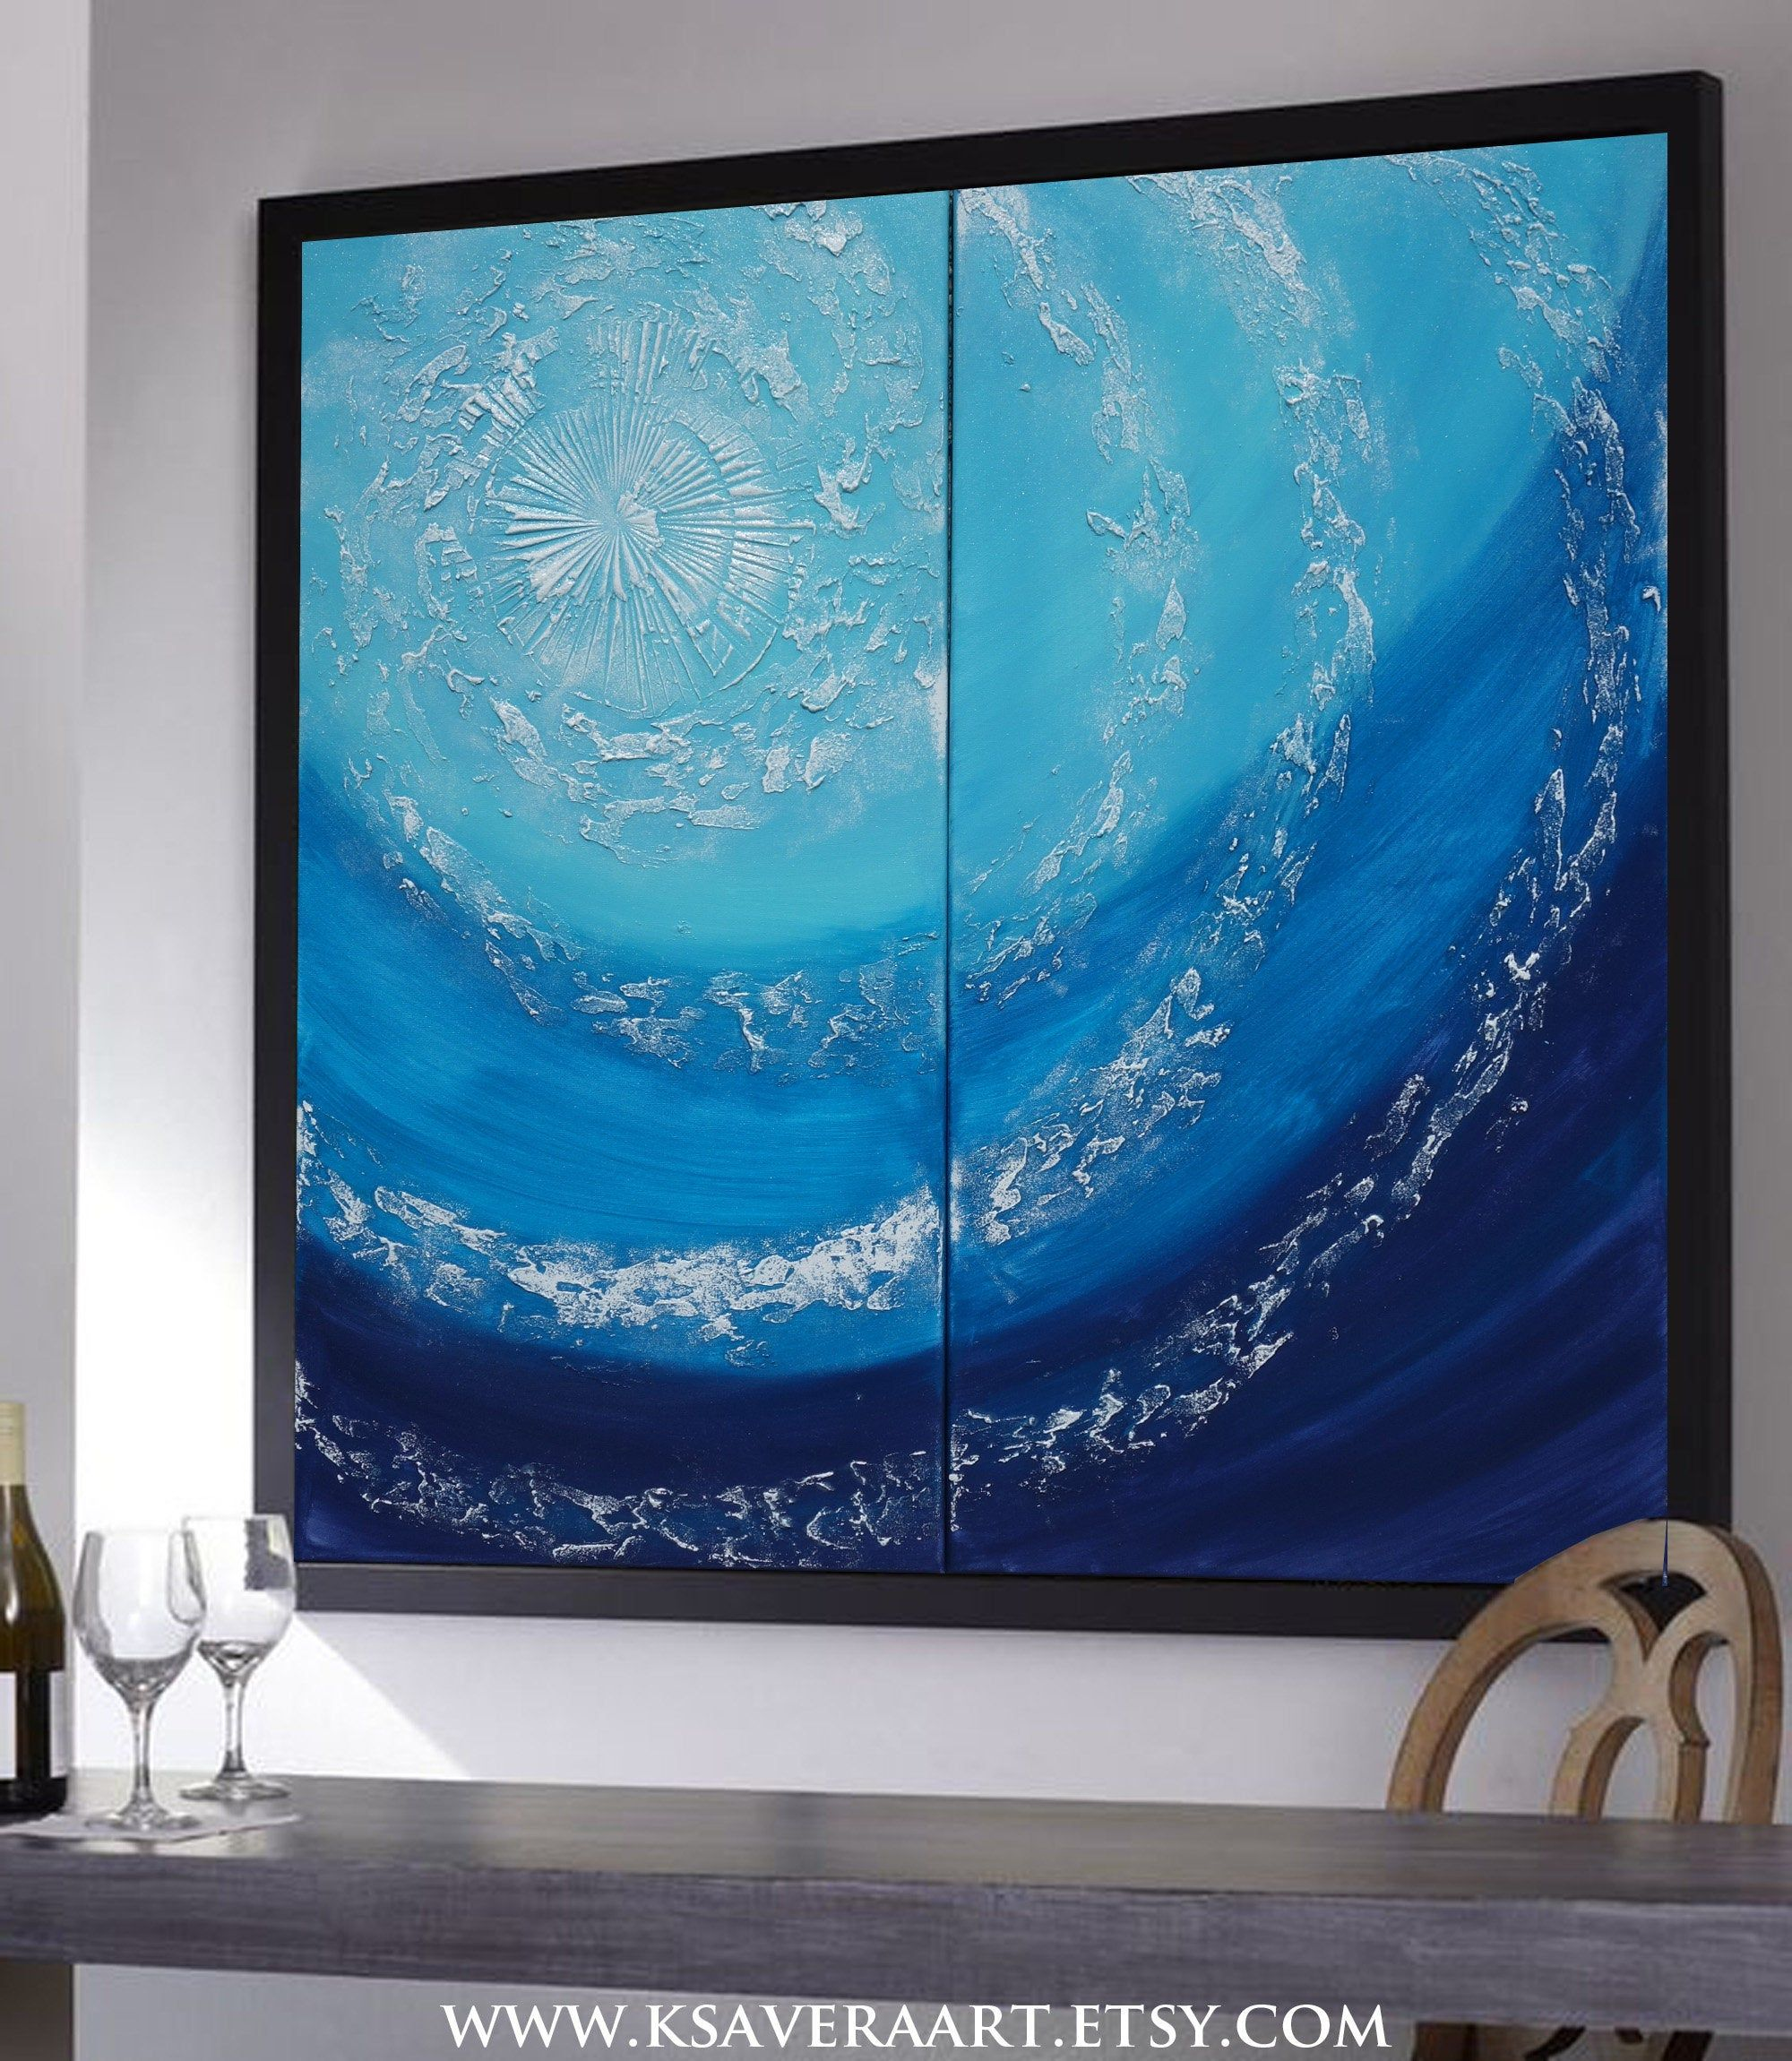 marine decor Blue sea Abstract Painting vertical textured wall art A088 Acrylic Original Contemporary Art by Ksavera mid century modern art